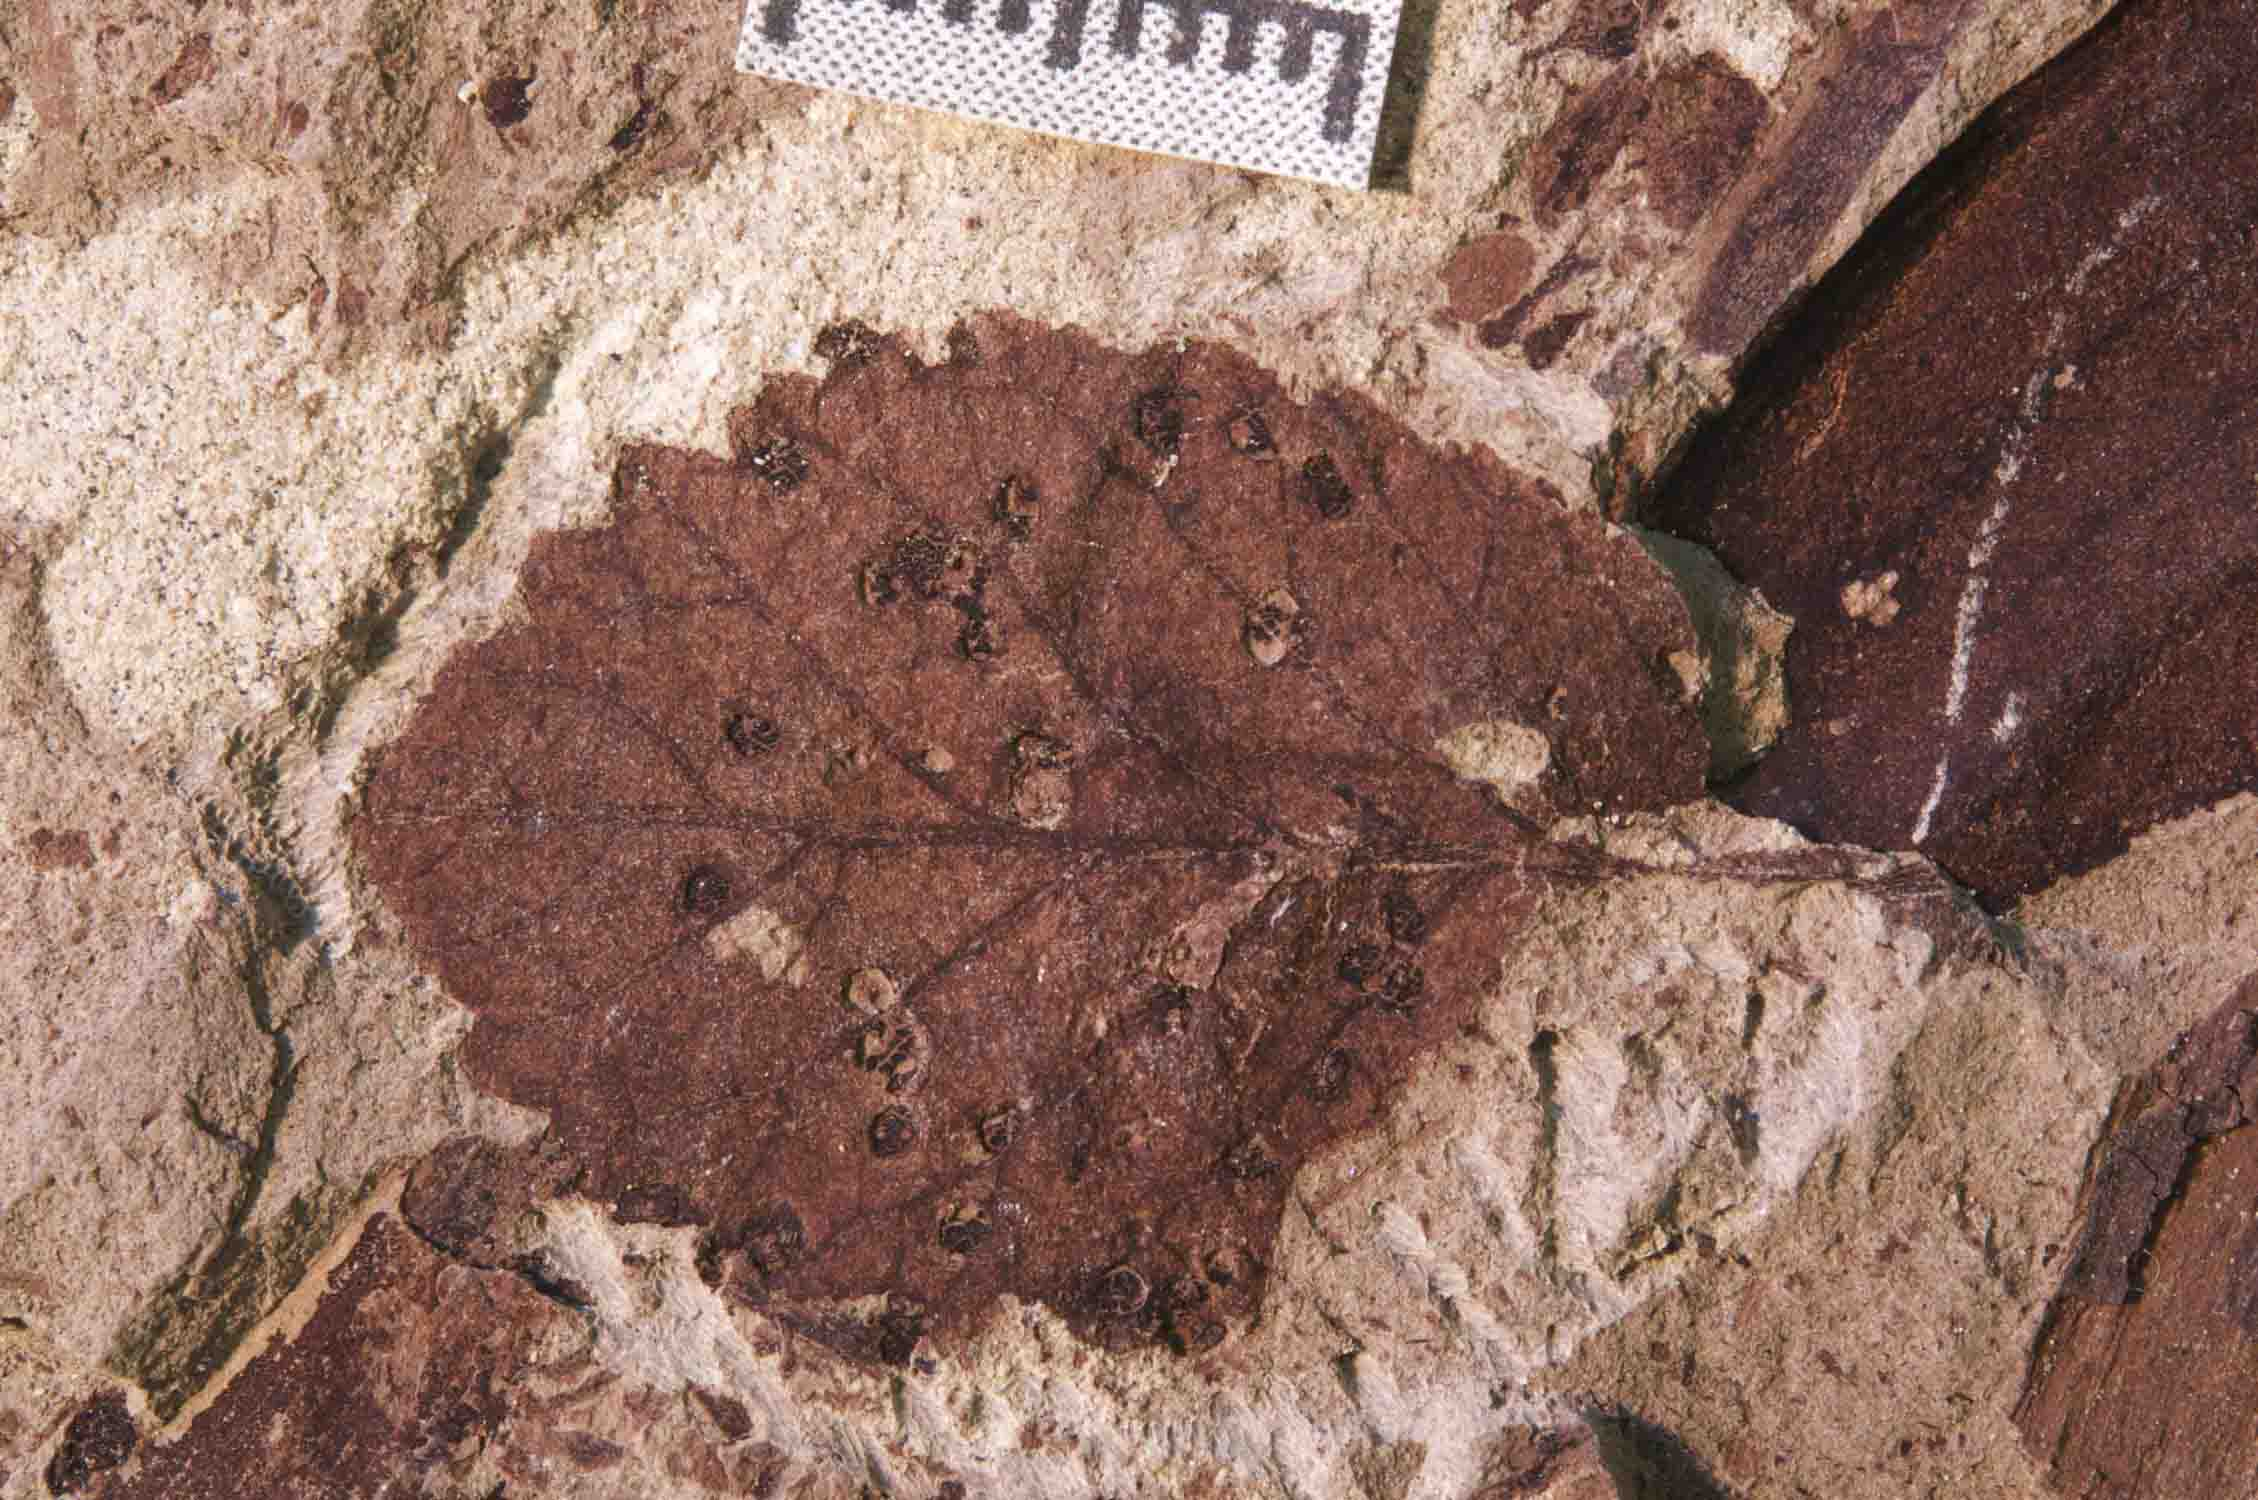 Patagonian Fossil Leaves Reveal Rapid Recovery From